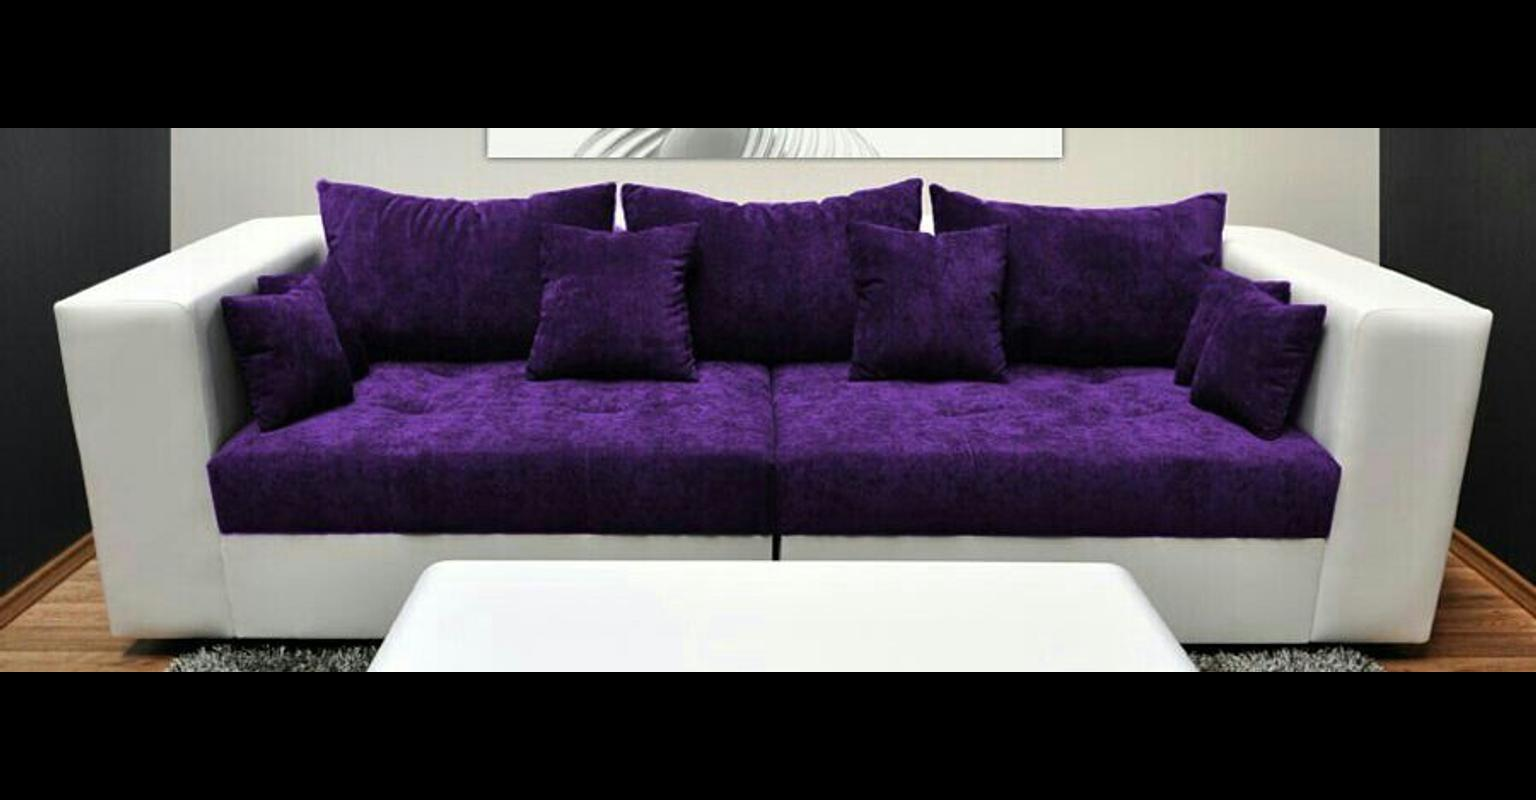 Couch Lila Xxl-sofa Lila Weiss In 80469 München For €150.00 For Sale | Shpock